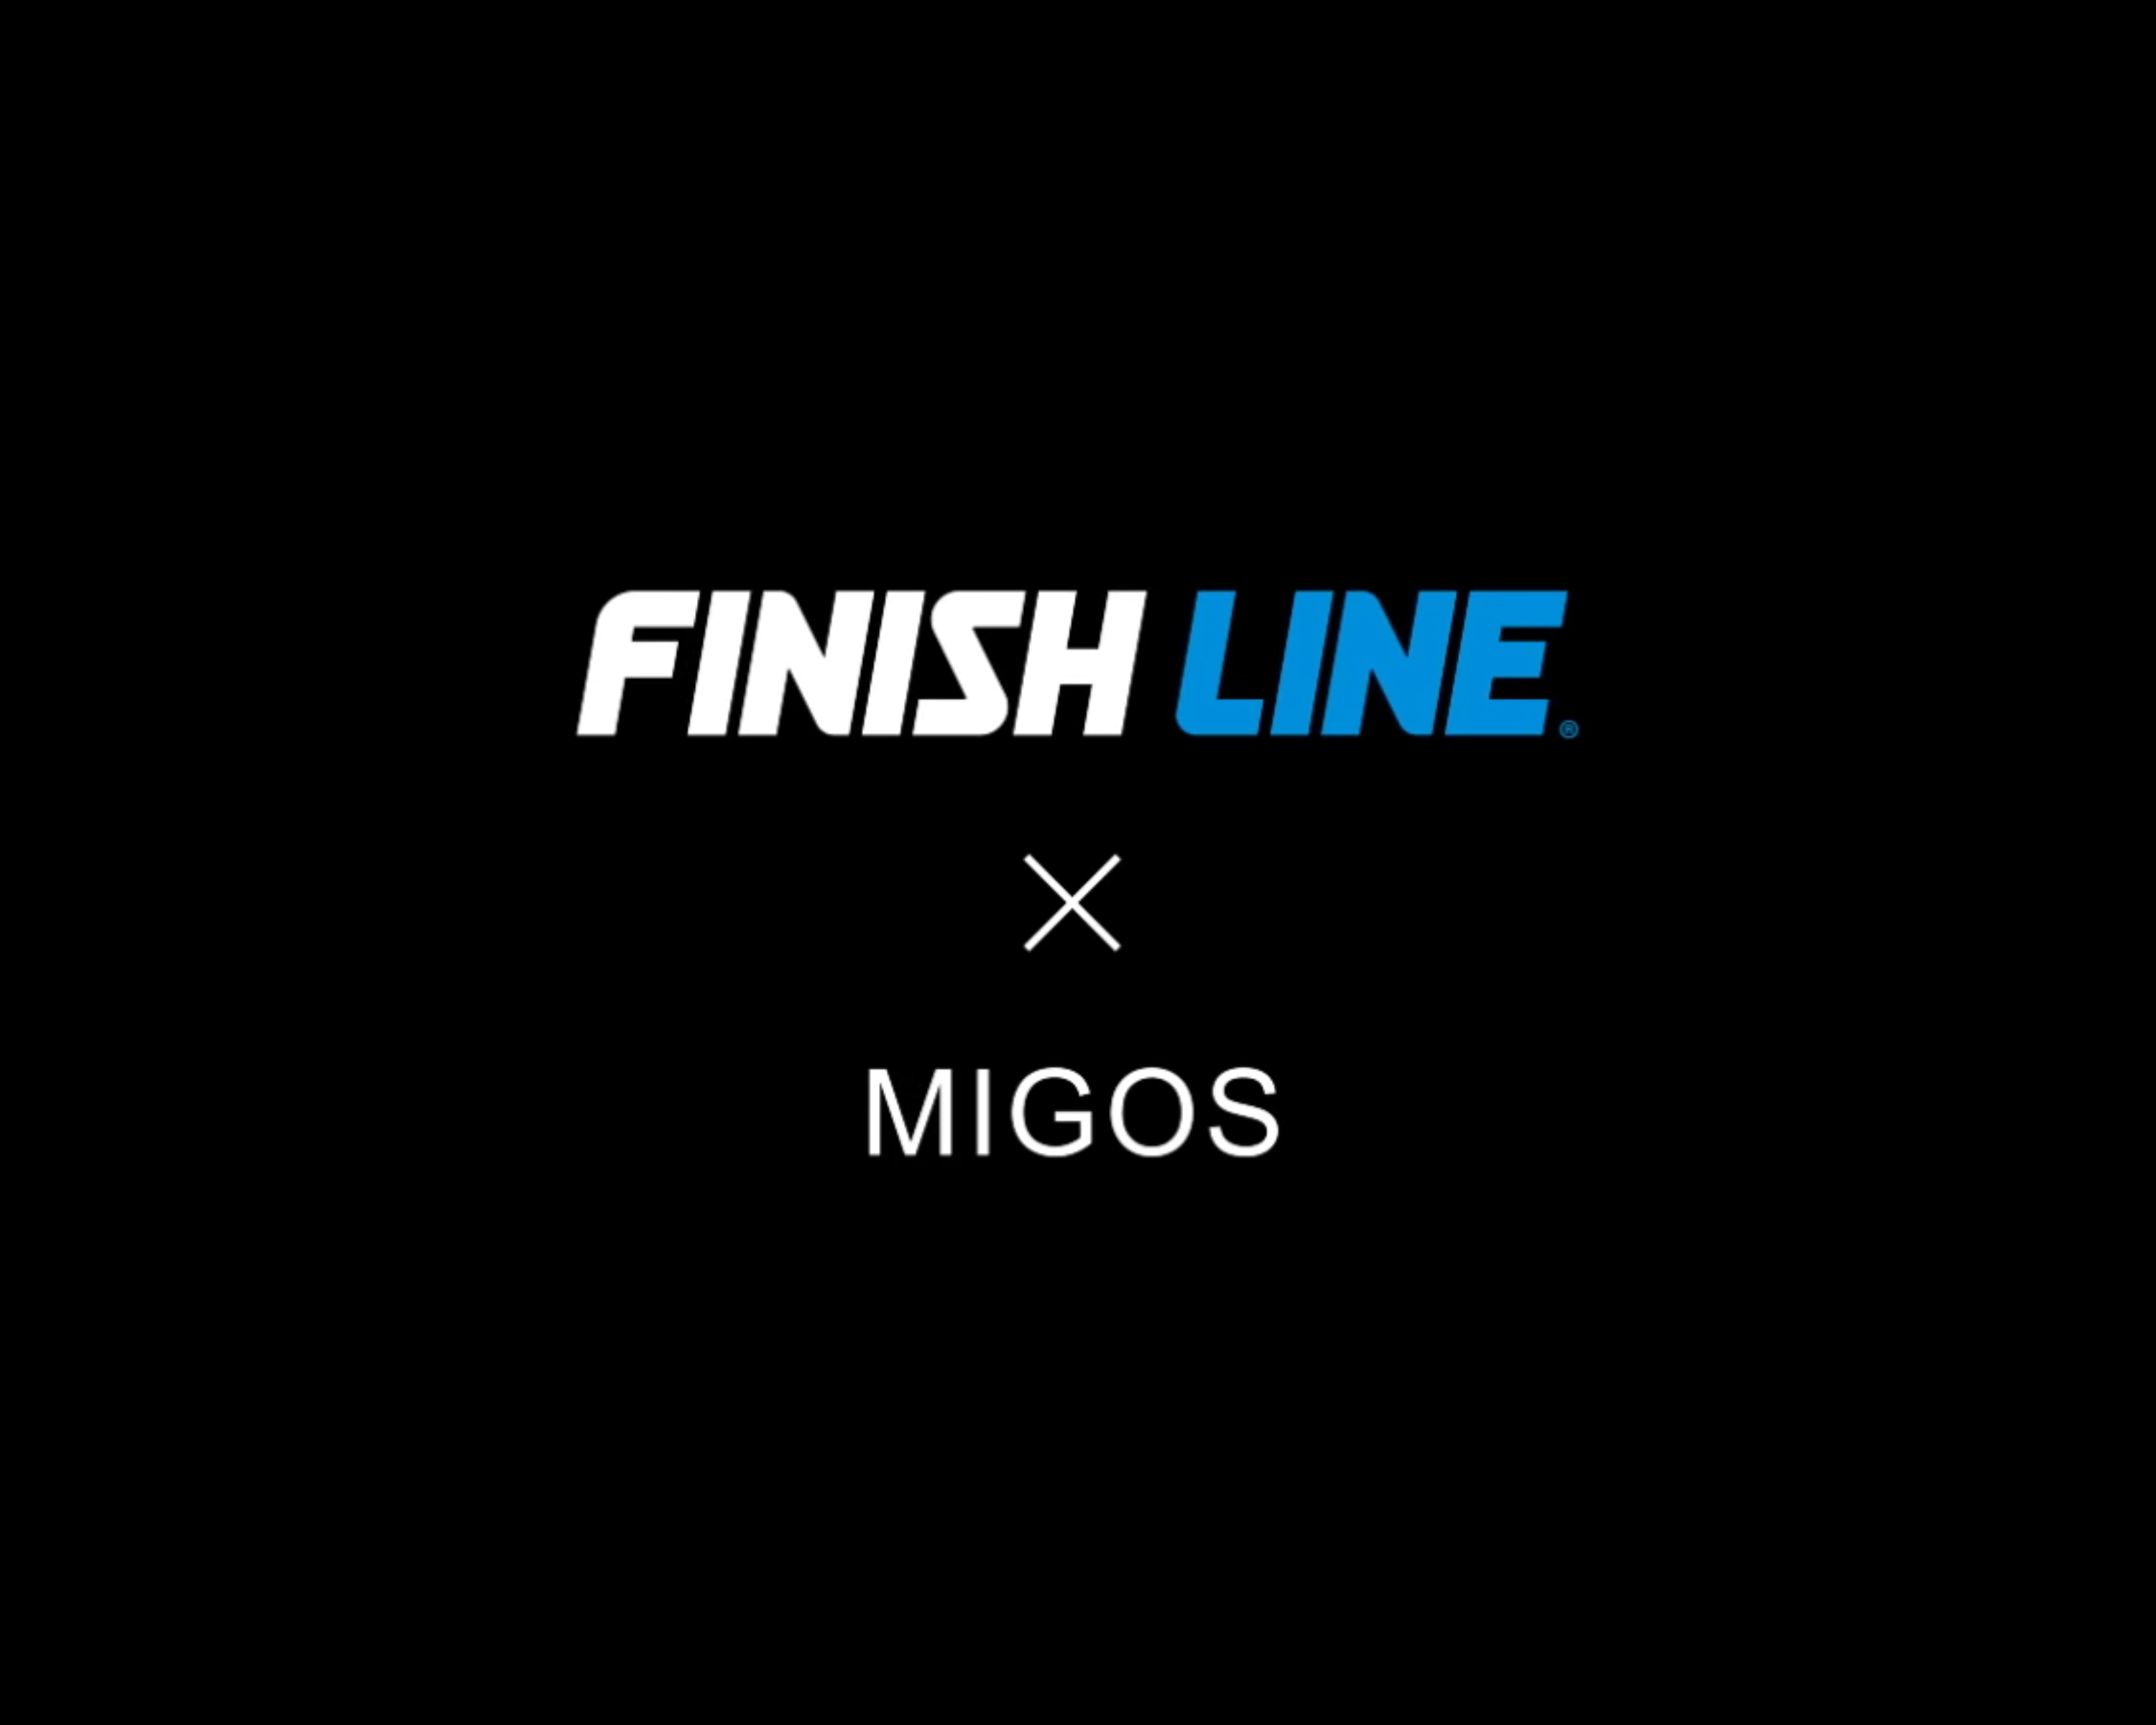 Thumbnail for Migos x Finish Line